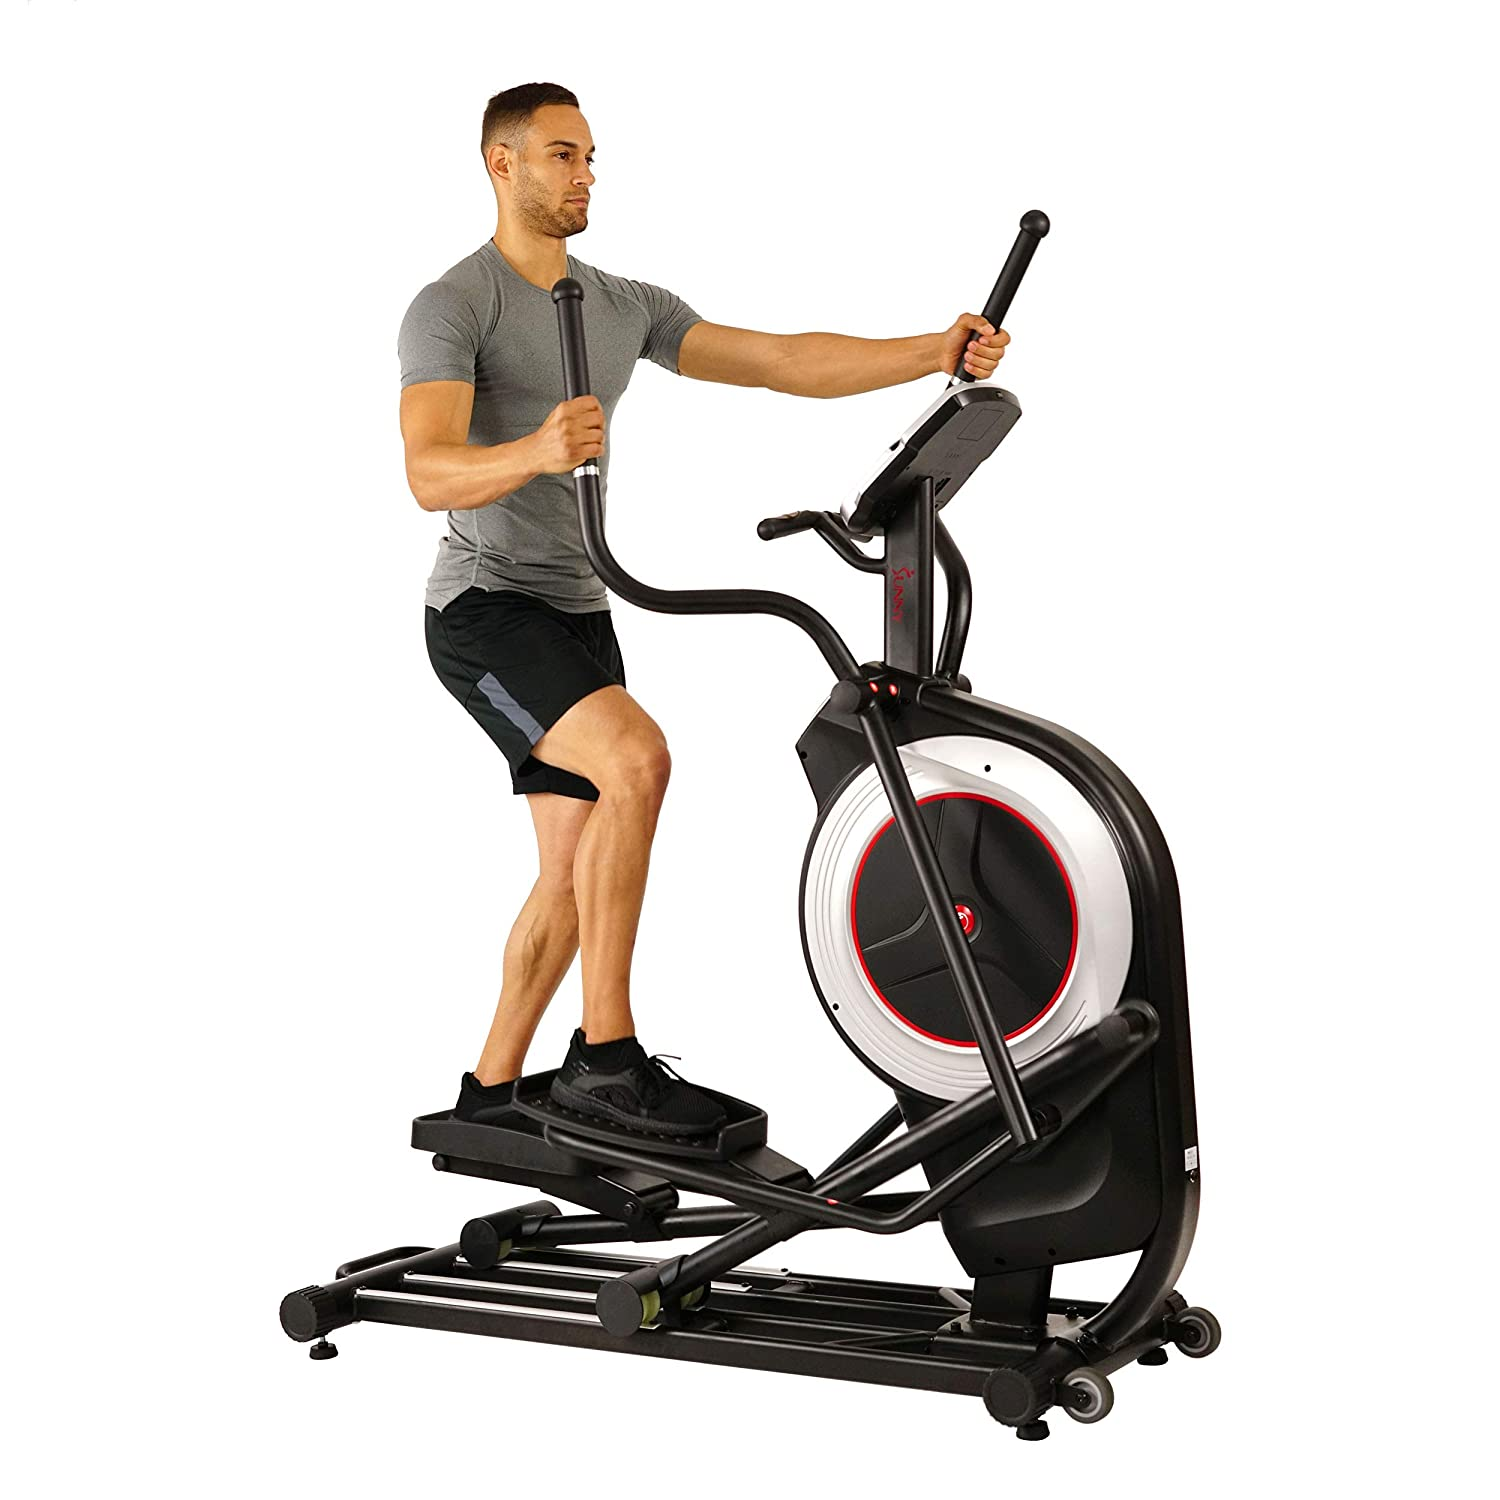 Health & Fitness Motorized Elliptical Trainer Elliptical Machine with Programmable Monitor, High Weight Capacity and 20 Inch Stride